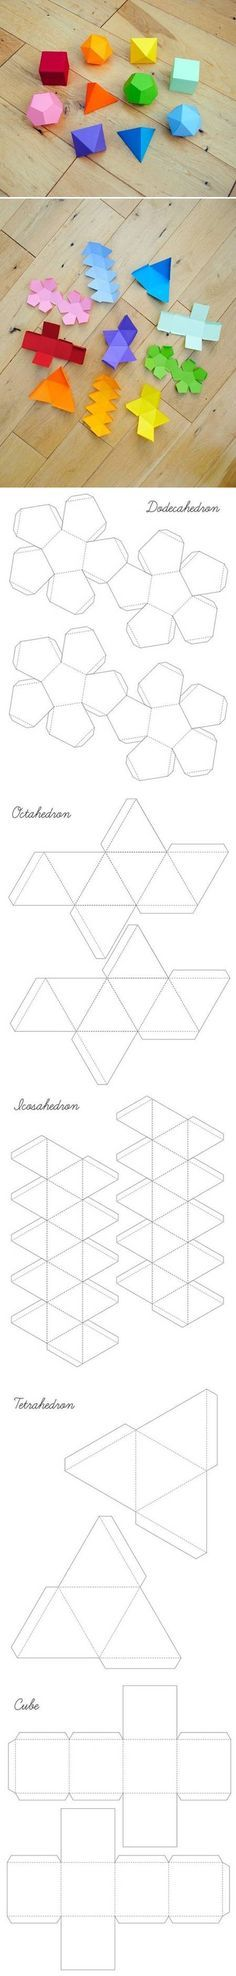 DIY Geometrical Box Templates DIY Geometrical Box Templates... Great for intro observational drawing